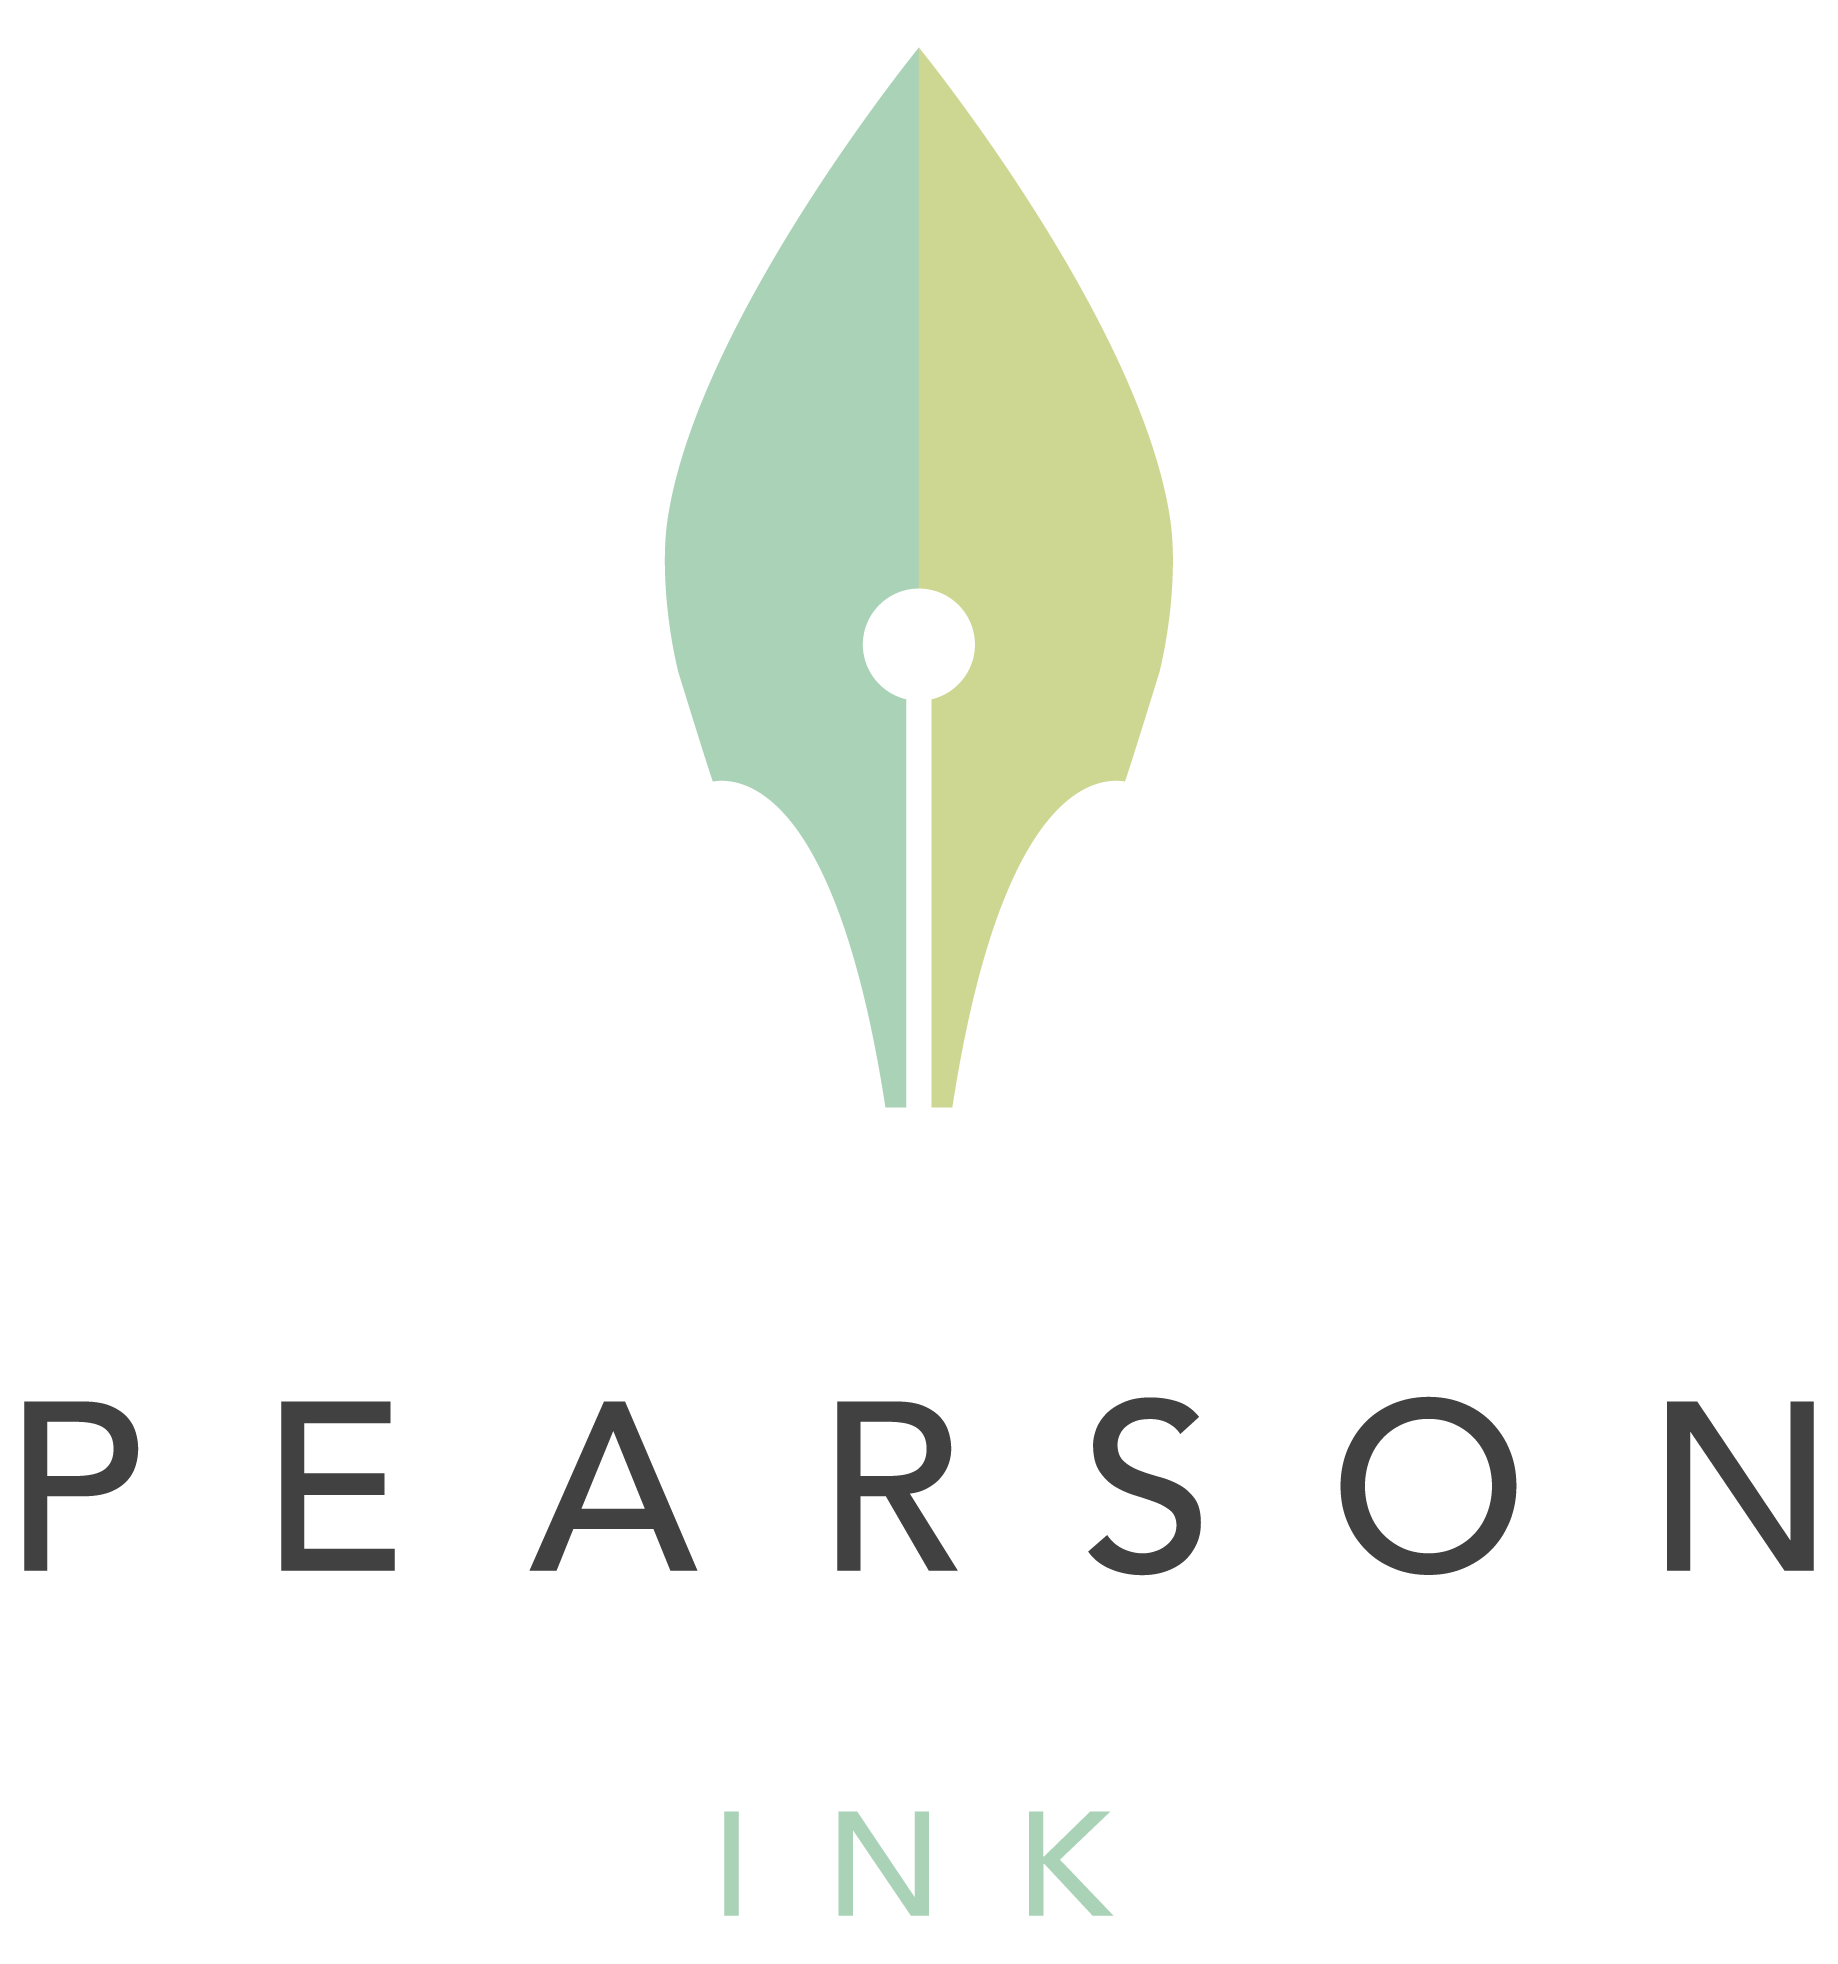 Pearson Ink